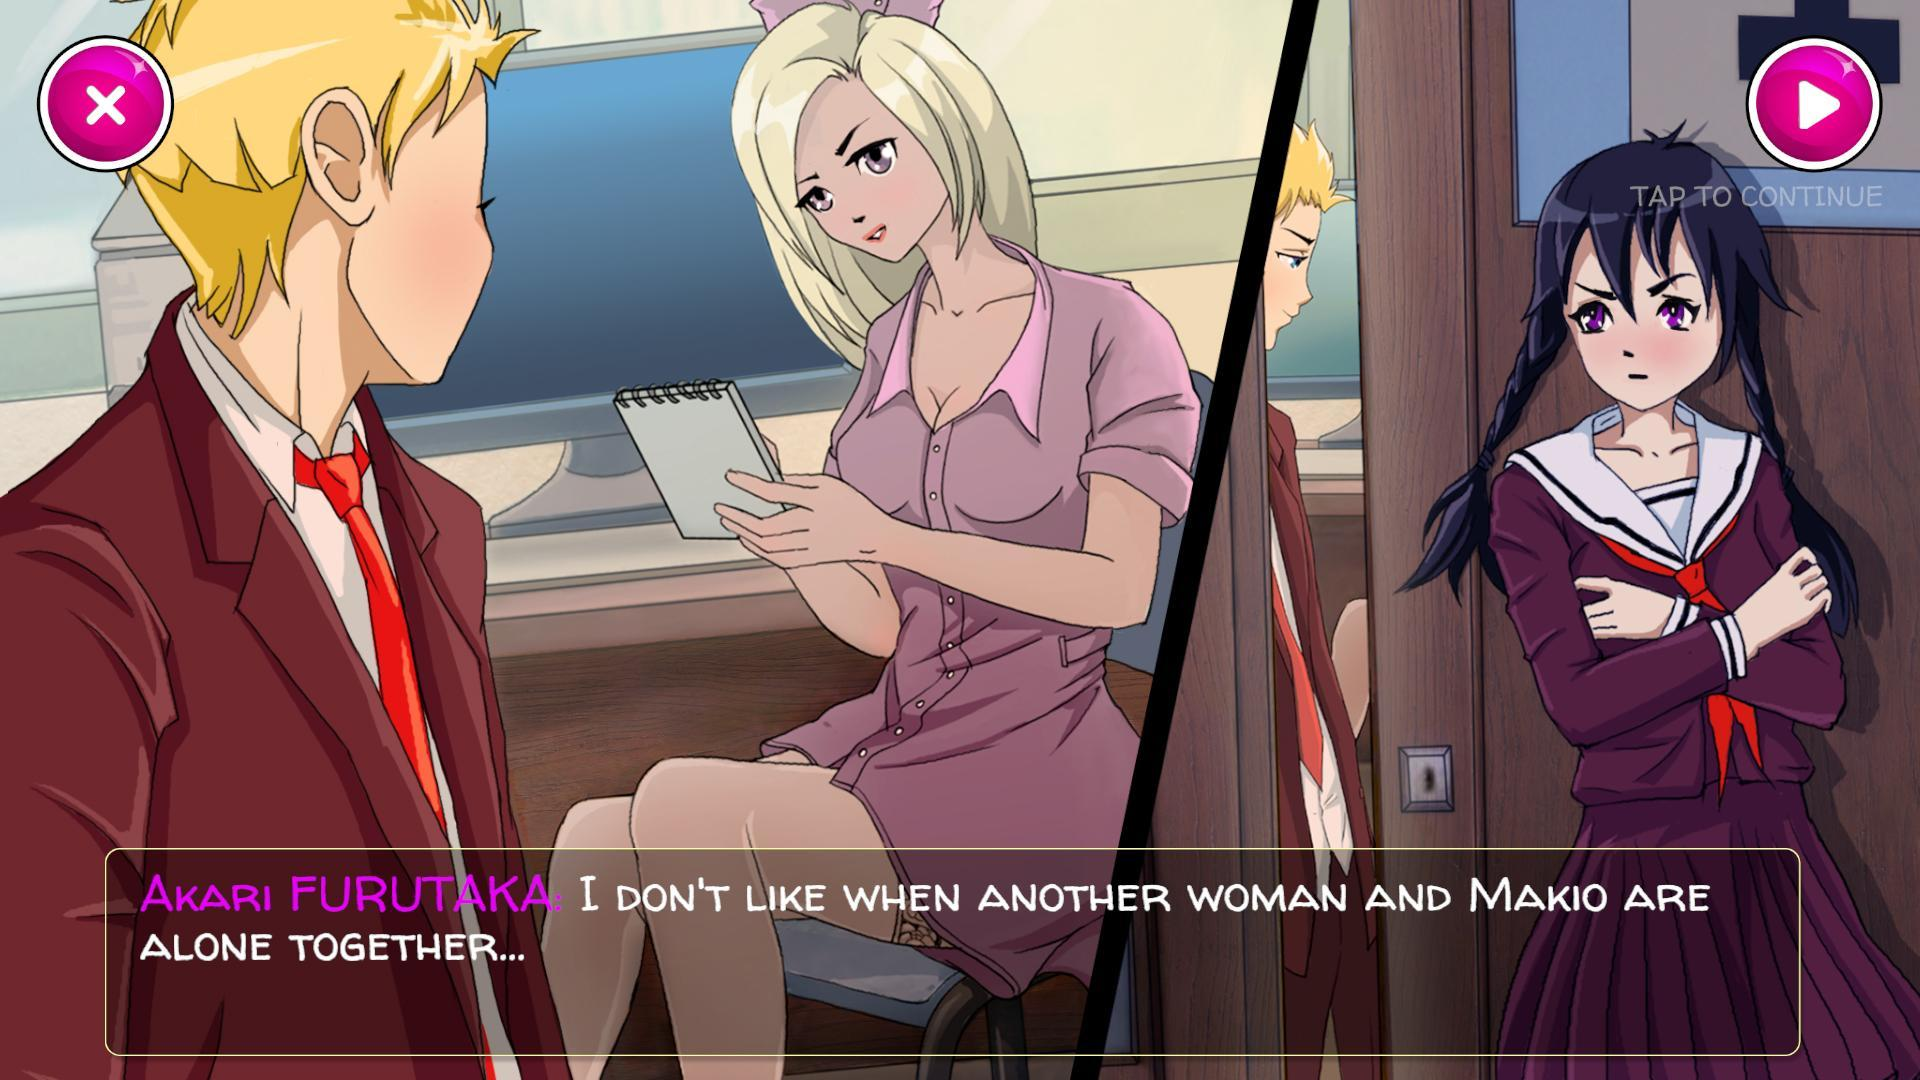 Yandere School for Android - APK Download